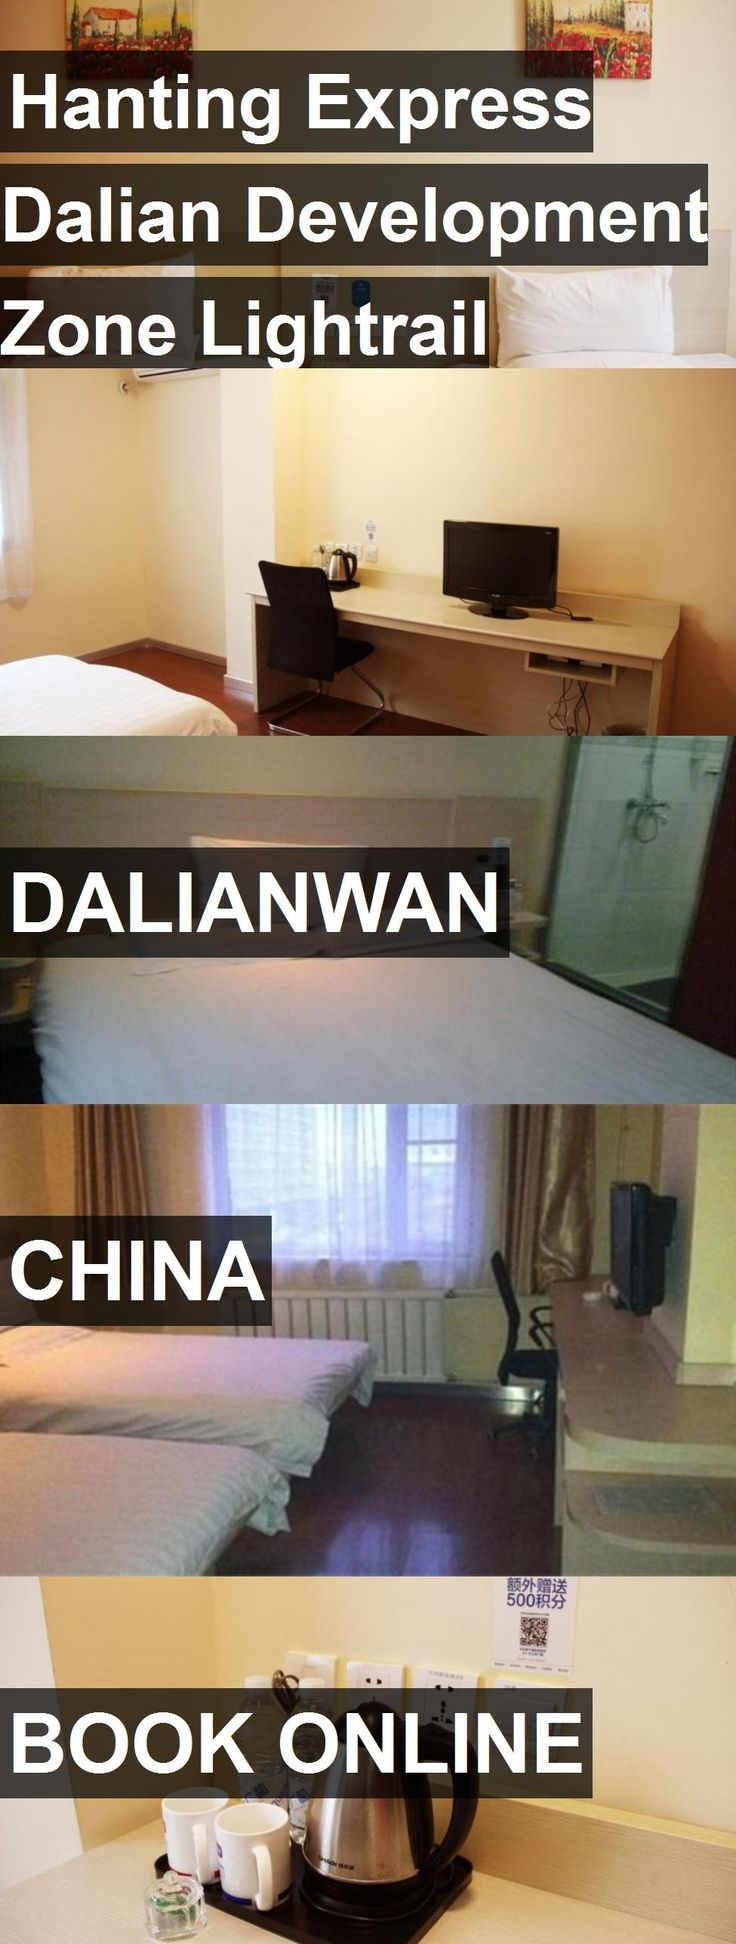 Hotel Hanting Express Dalian Development Zone Lightrail Station in Dalianwan, China. For more information, photos, reviews and best prices please follow the link. #China #Dalianwan #travel #vacation #hotel